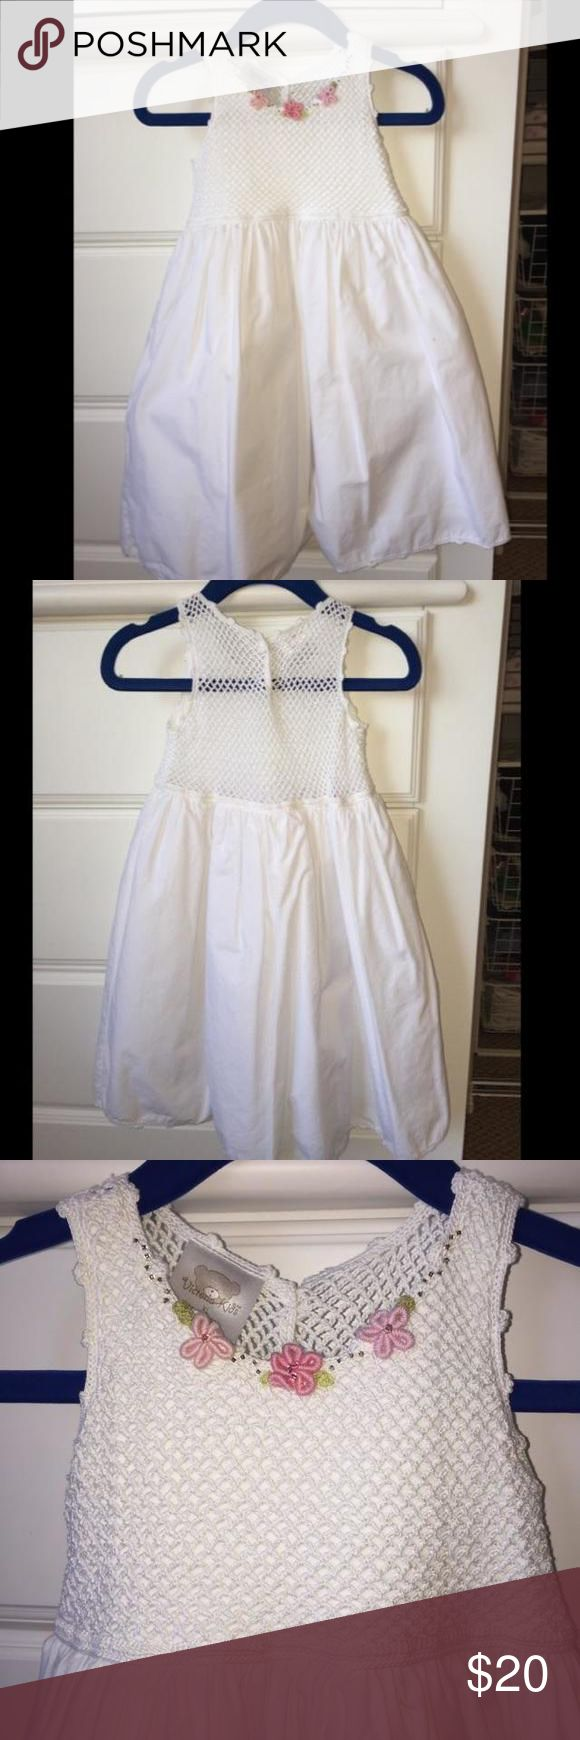 Victoria Kids White Dress Gorgeous white Victoria Kids Dress. Retails at over $70! Like new, worn once, no signs of wear. Tag says 18-24 mos but fit my tall, slim 2 year old perfectly. Fully lined. Comes with matching cropped cardigan. Victoria Kids Dresses